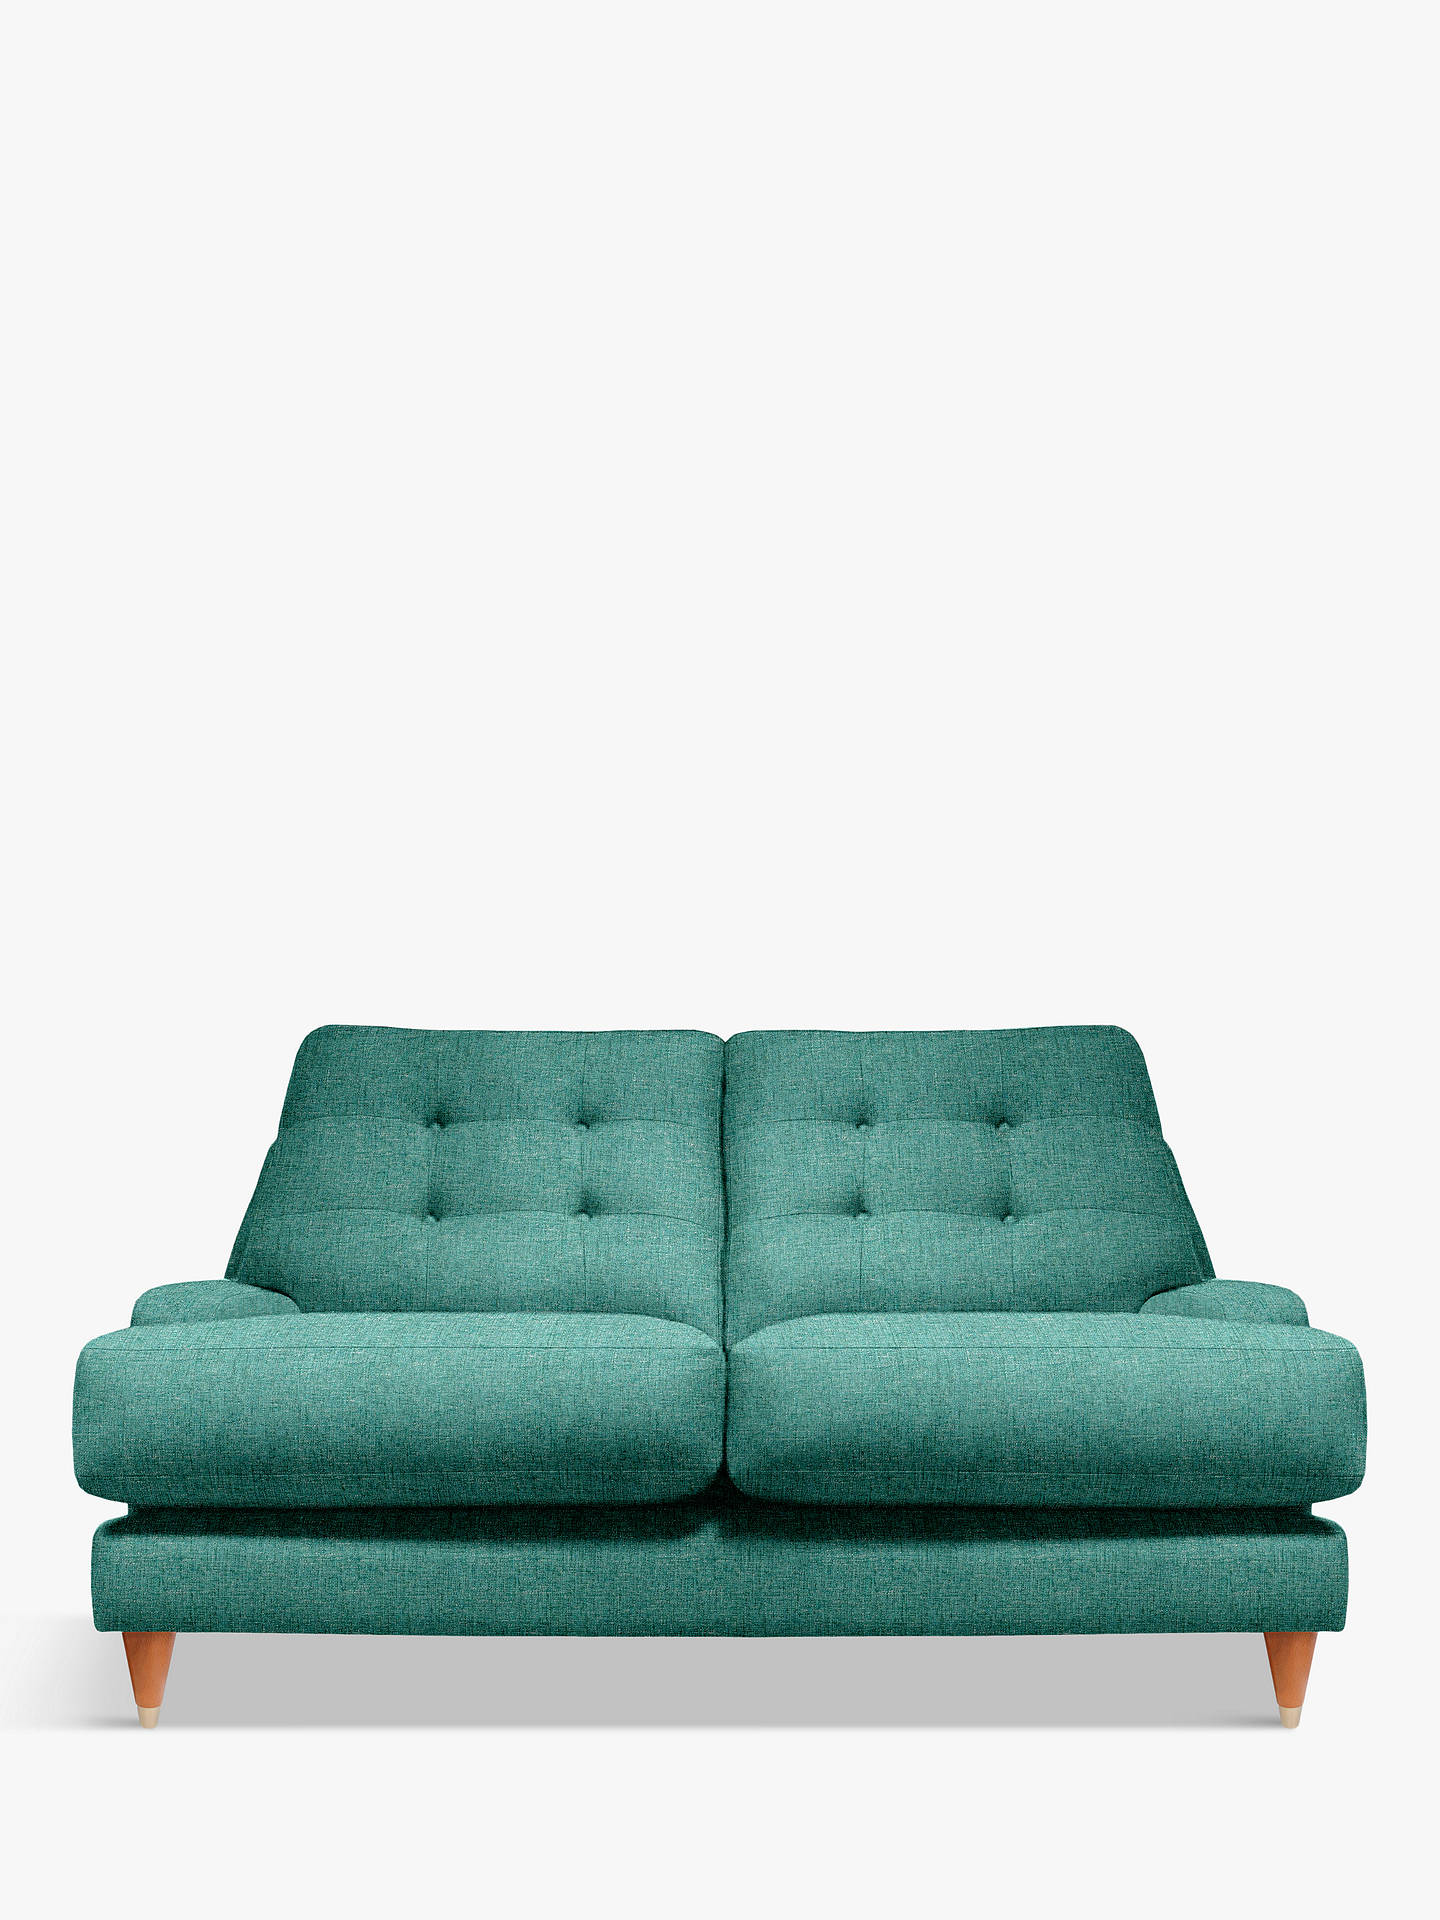 Awe Inspiring G Plan Vintage The Fifty Seven Small 2 Seater Sofa Sorren Teal Theyellowbook Wood Chair Design Ideas Theyellowbookinfo